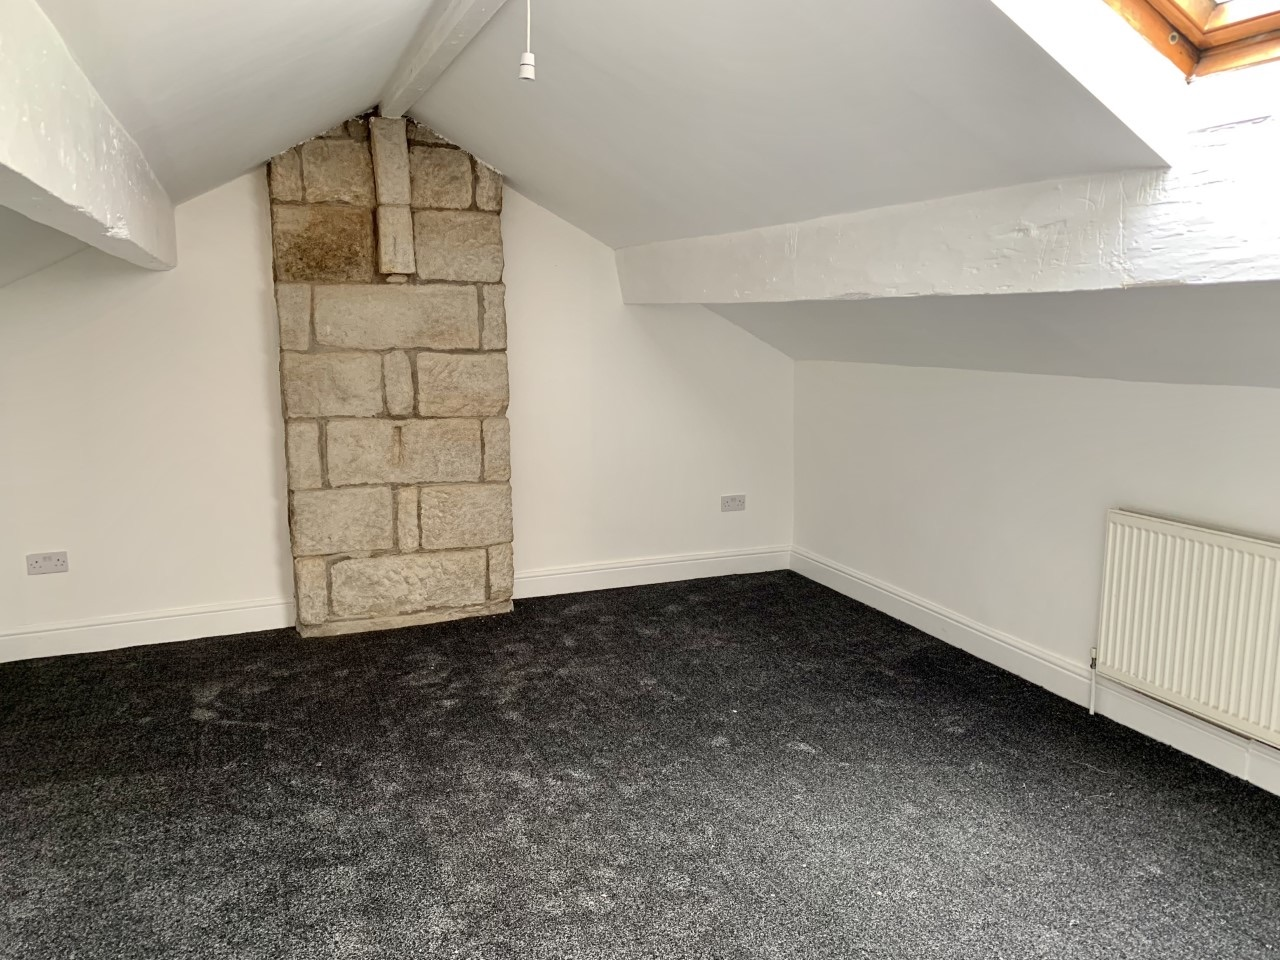 3 bedroom mid terraced house For Sale in Calderdale - Photograph 11.